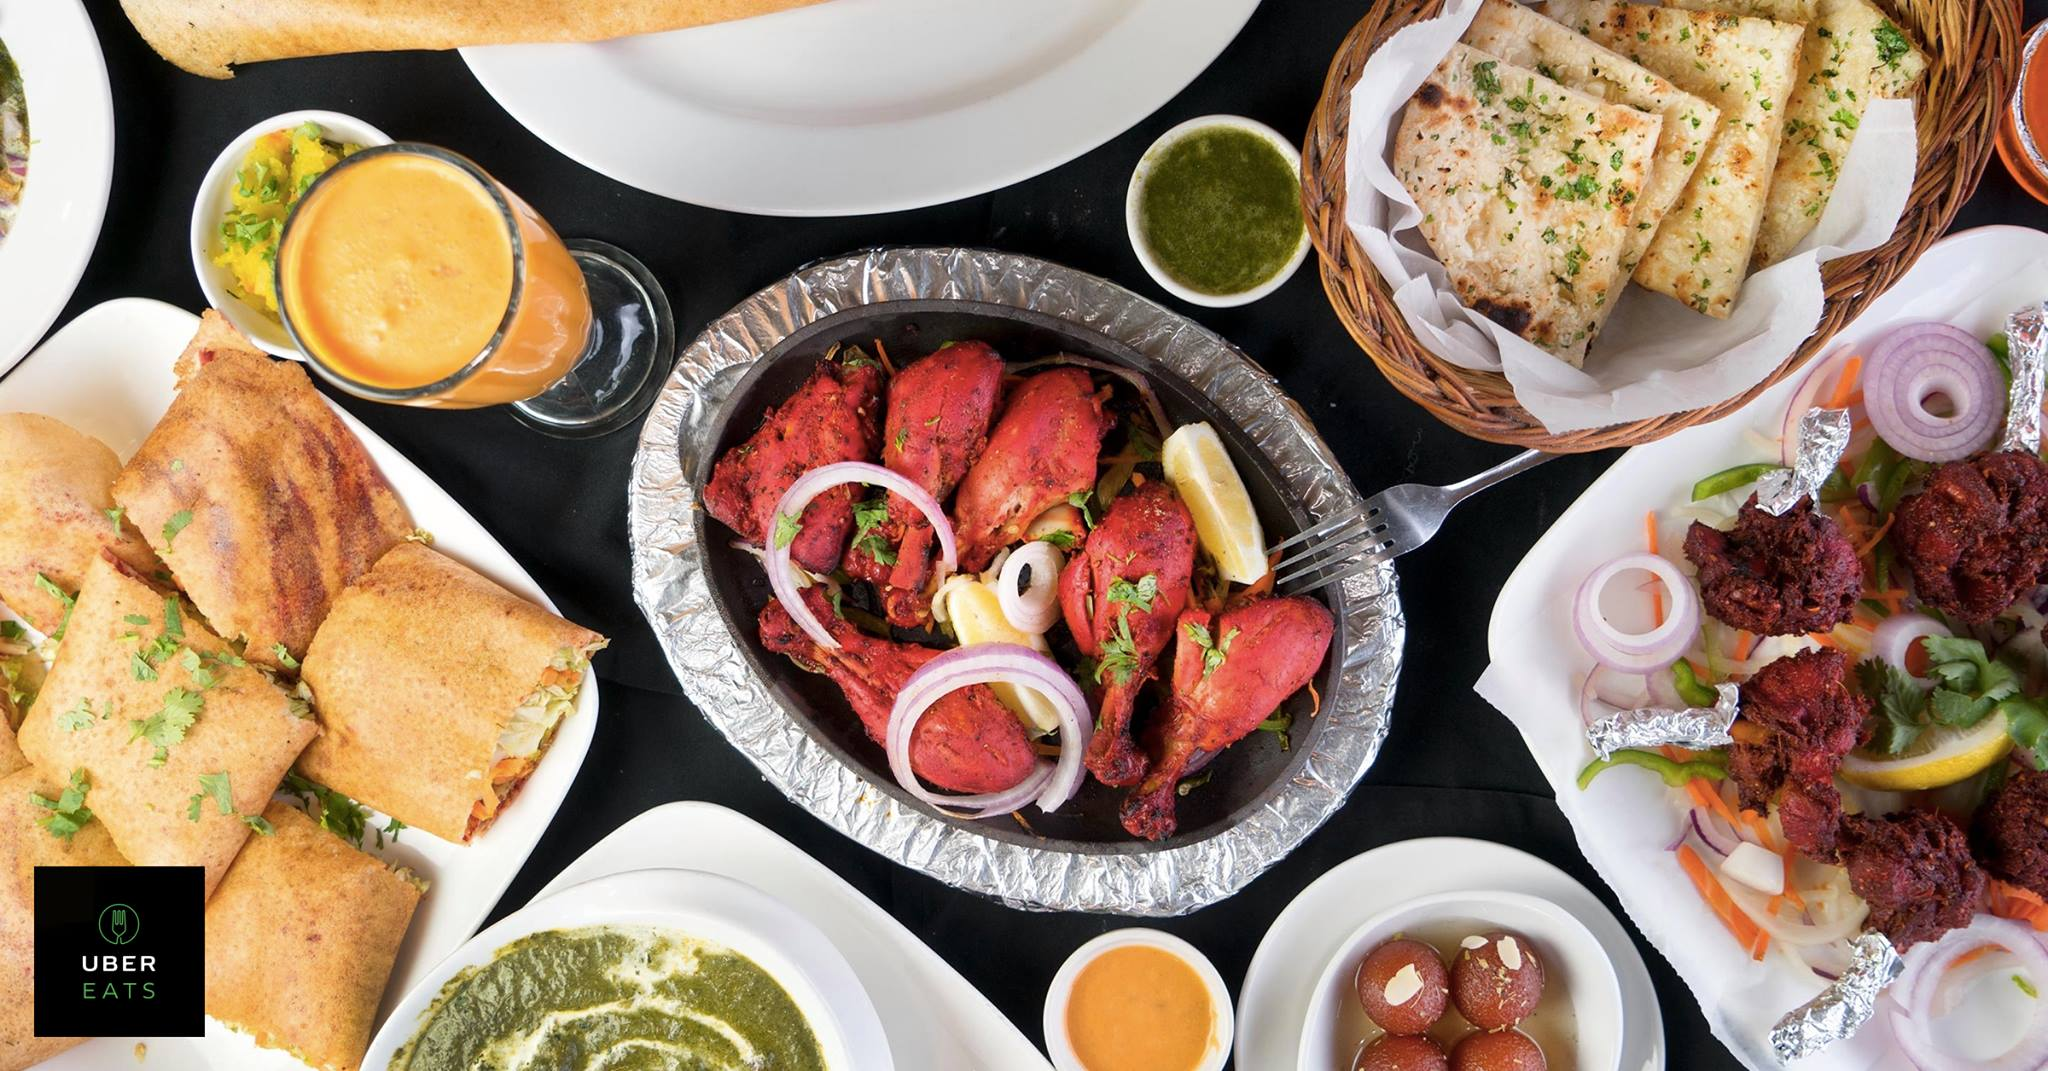 Tandoori chicken, mango lassi, blistered naan, aloo, and more food spread out on a table